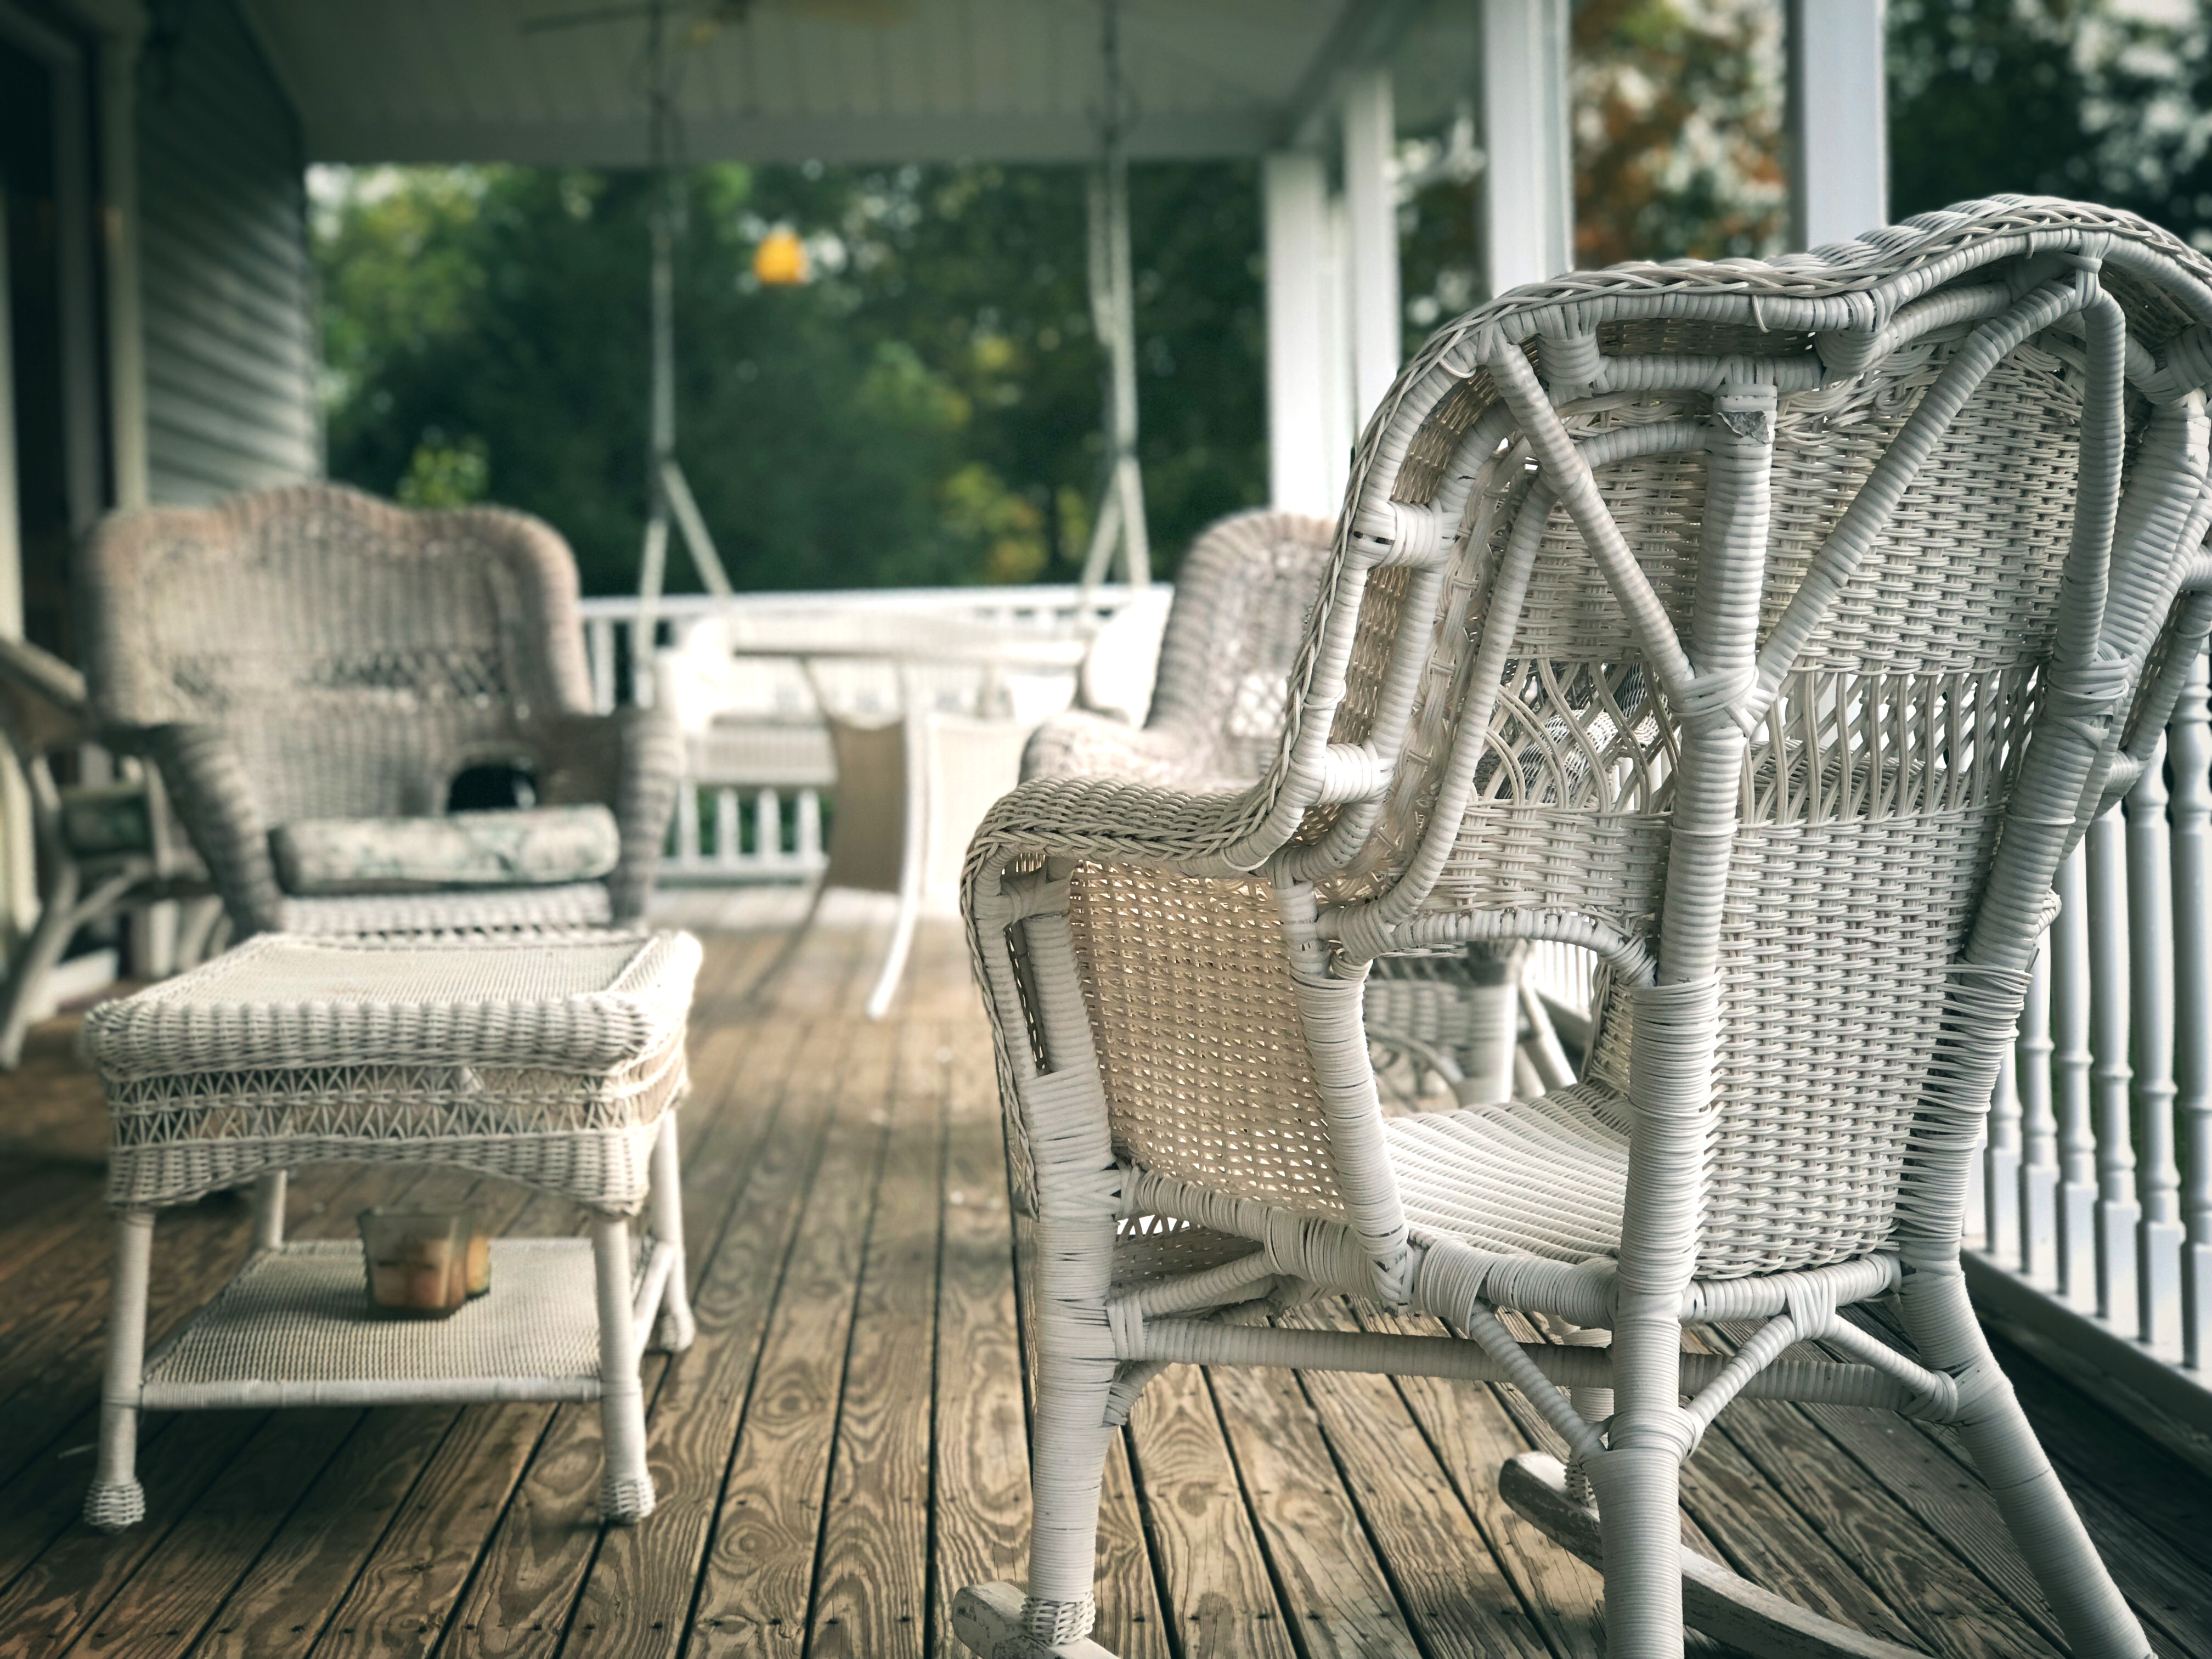 Take in the quiet moments at Grey Gables Bed & Breakfast Inn